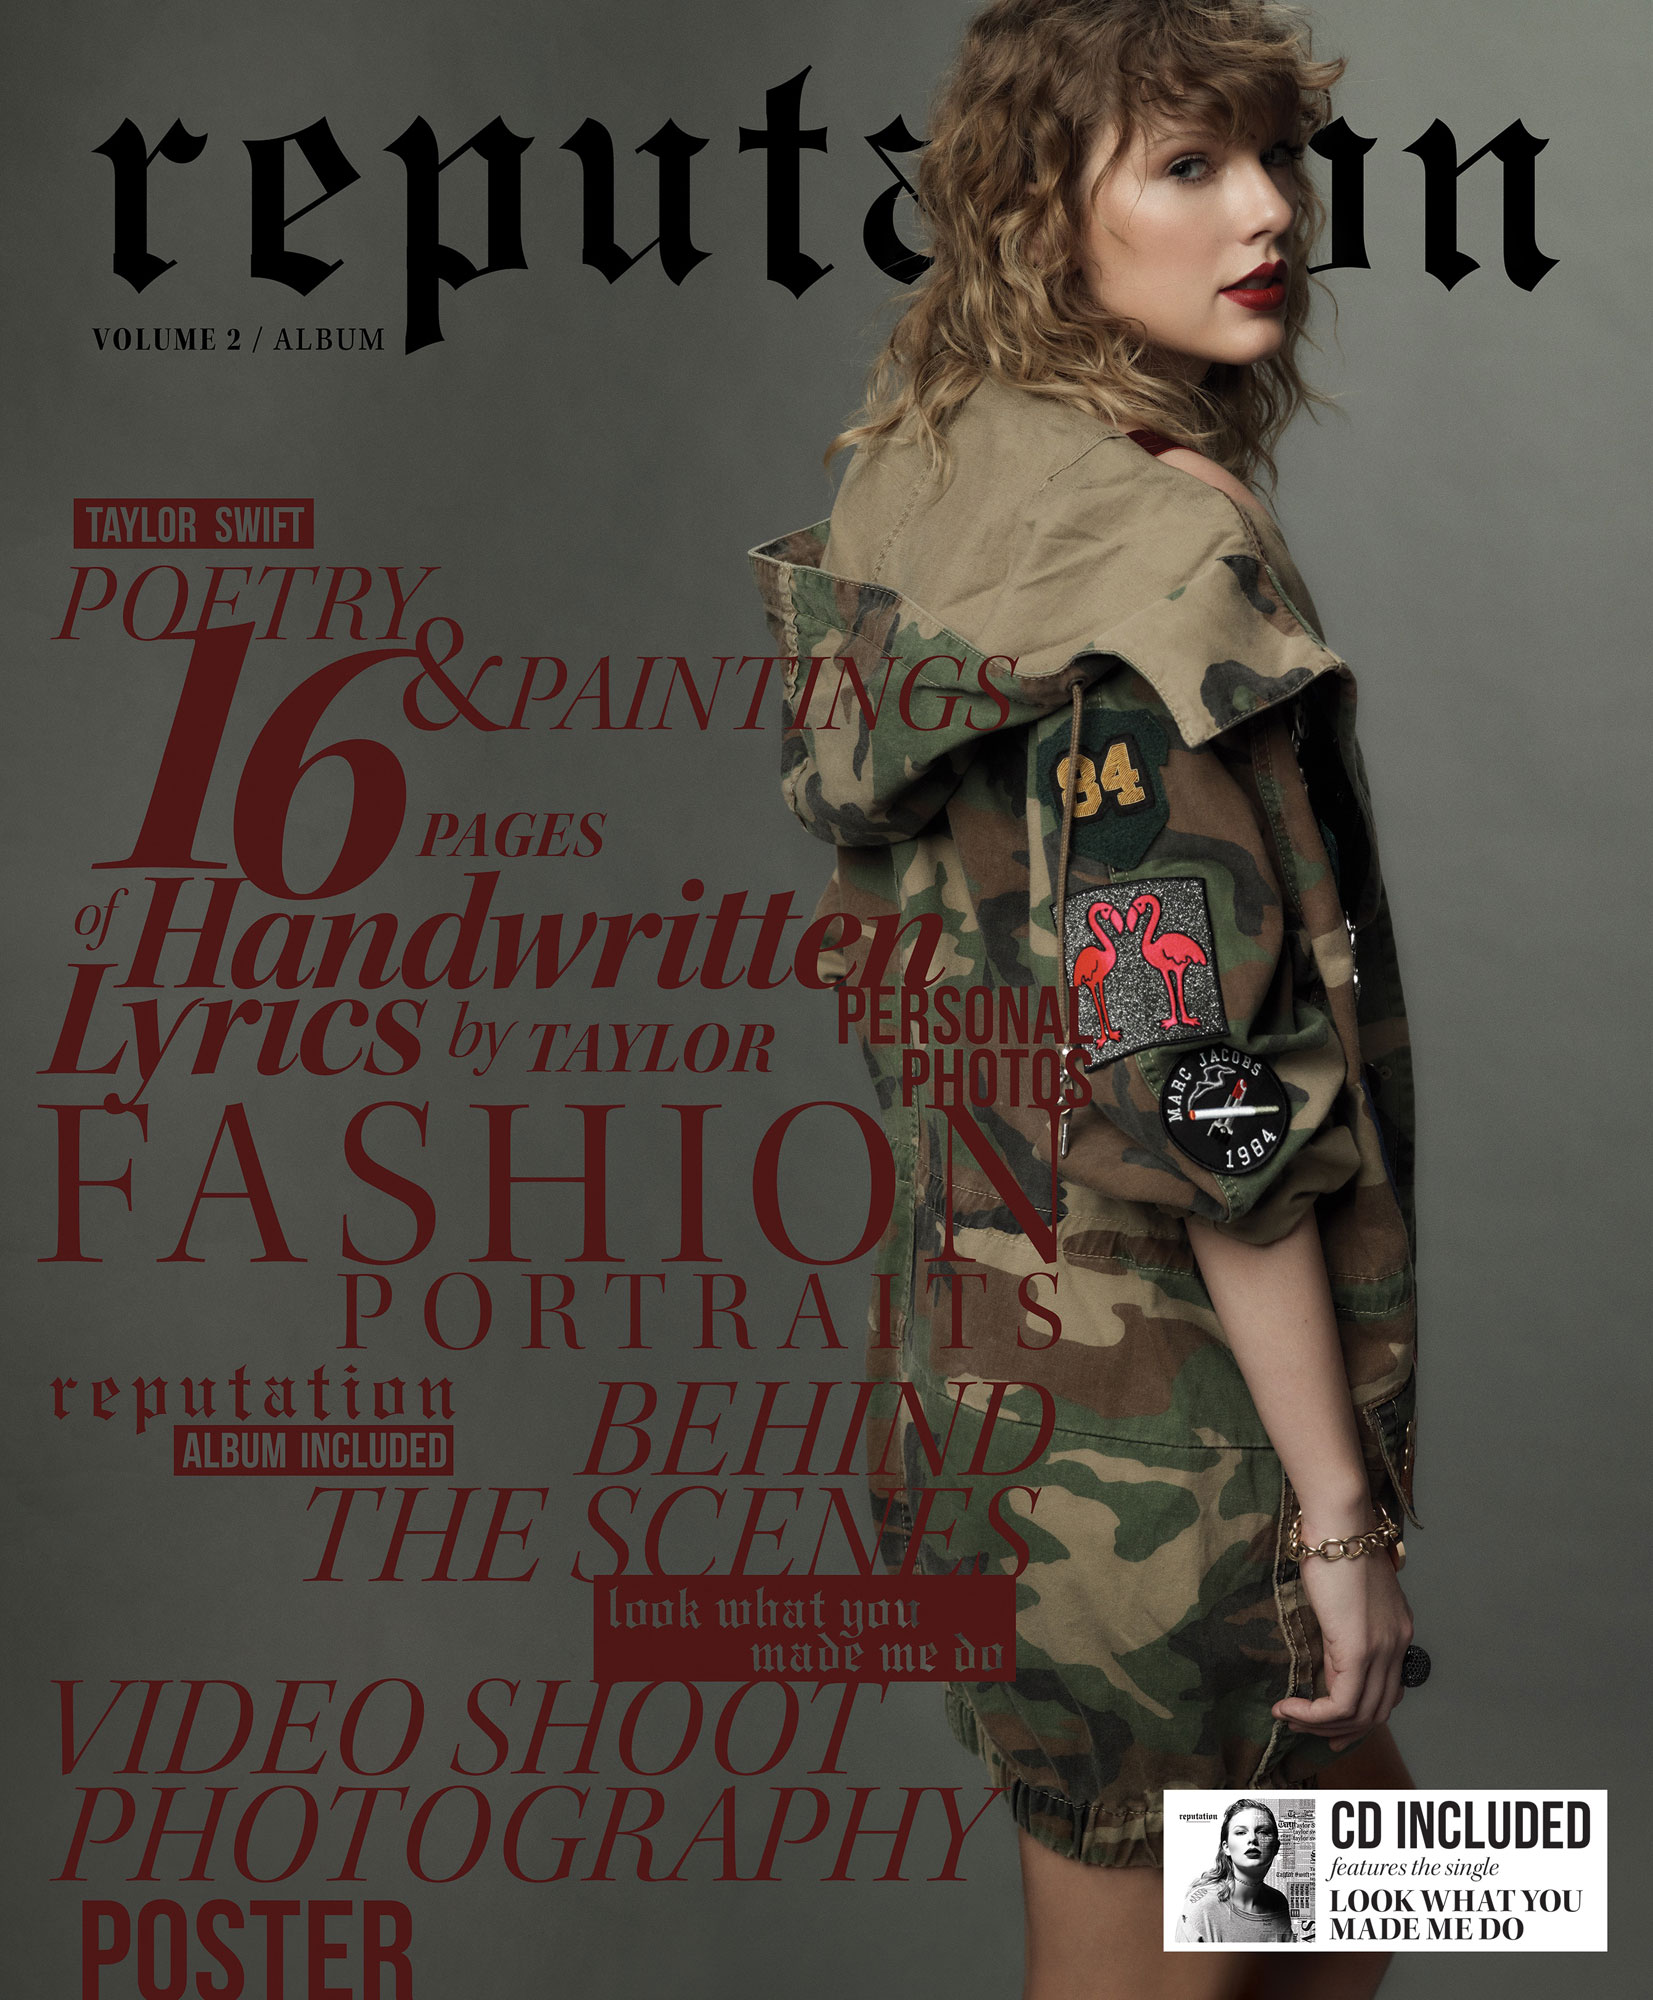 Taylor Swift Reputation Volume 2 Album CoverCredit: Mert & Marcus